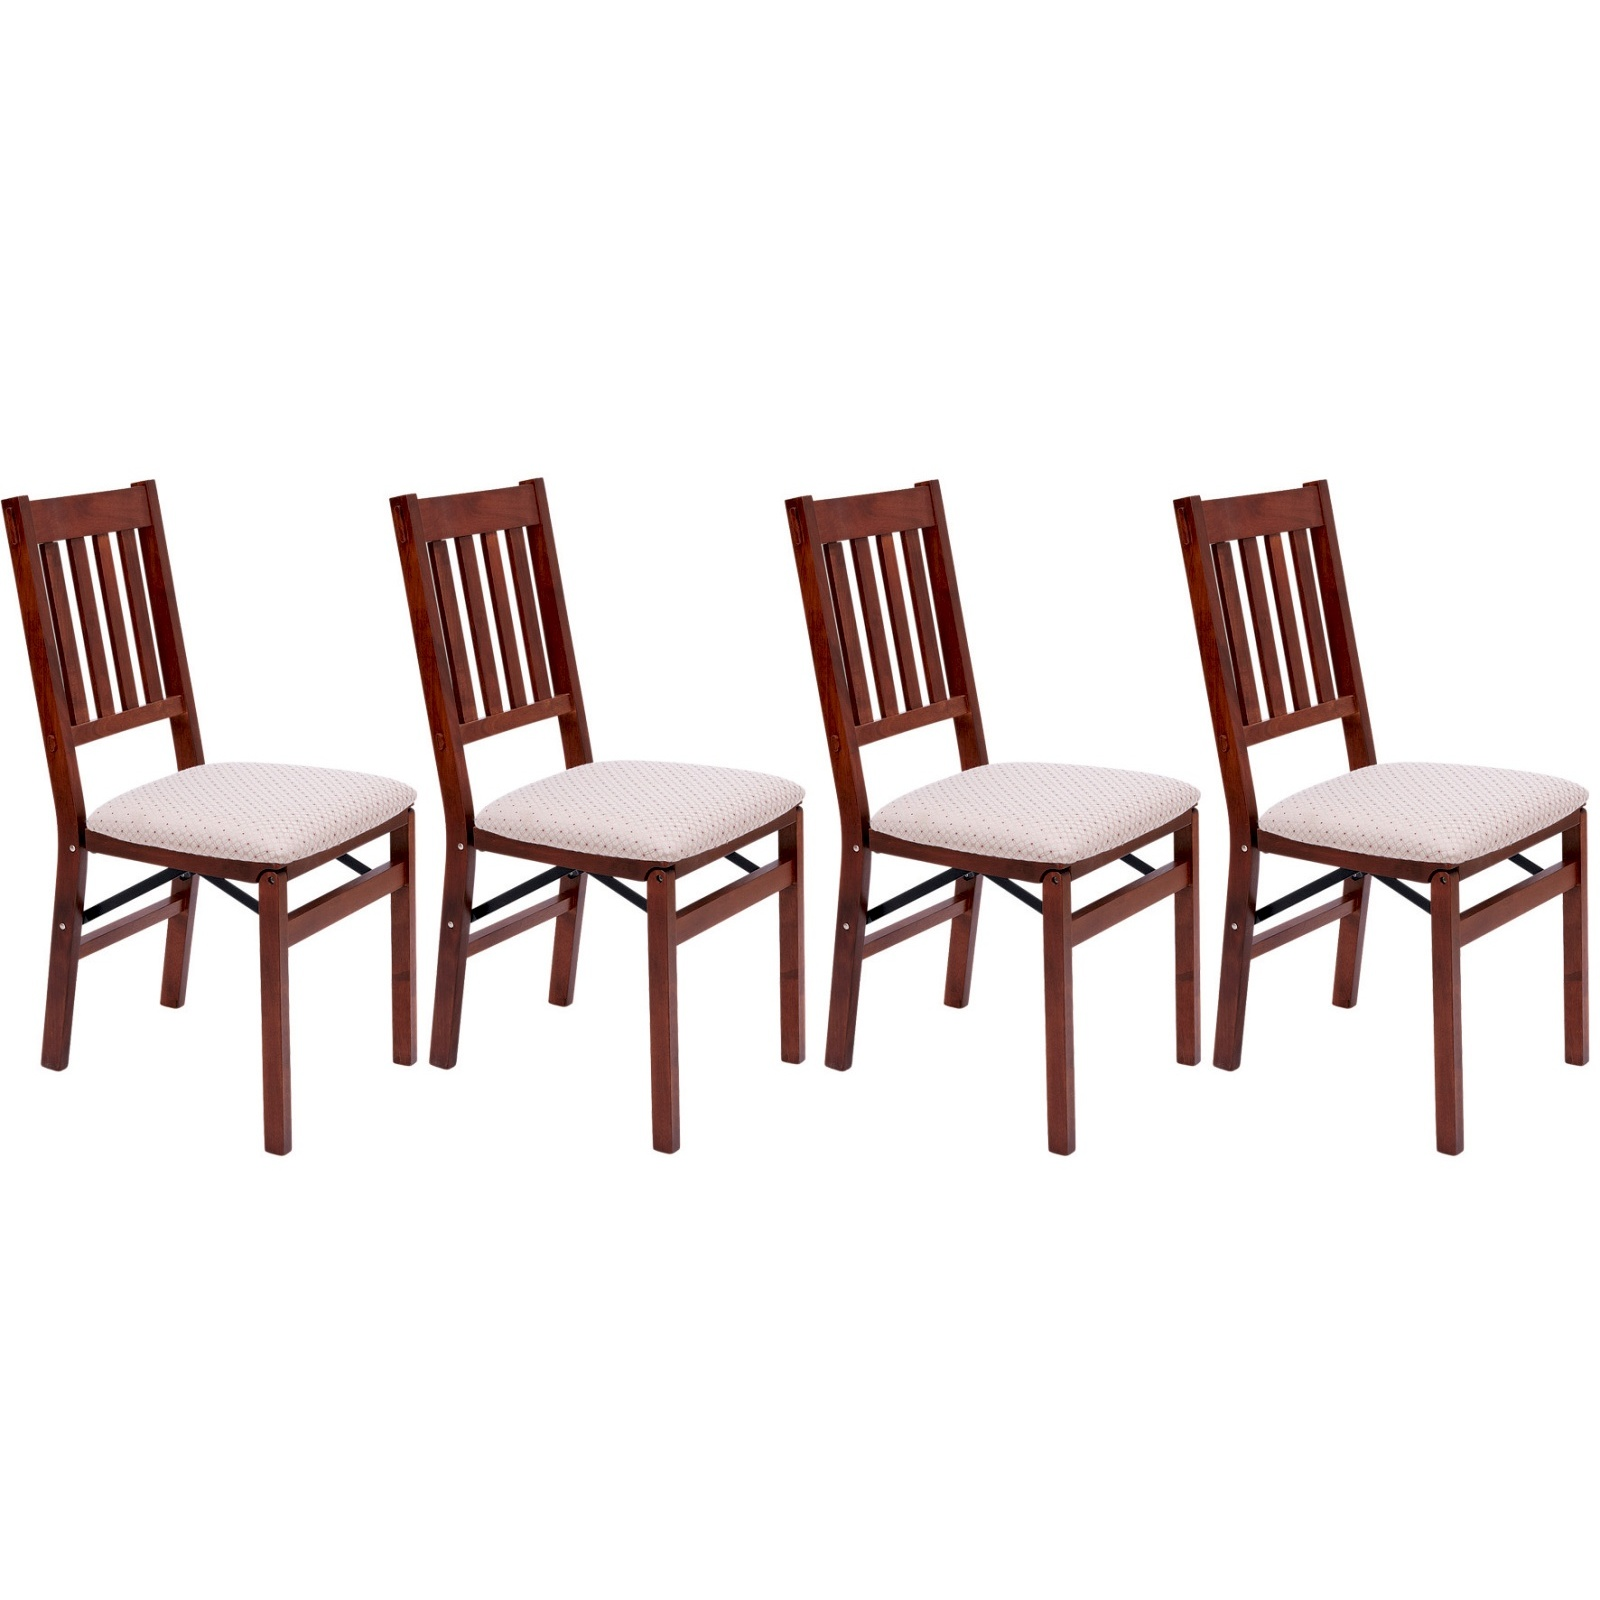 Folding Dining Chair Padded Seat Sturdy Solid Hardwood Mahogany Pack Of 4 5053335372750 Ebay